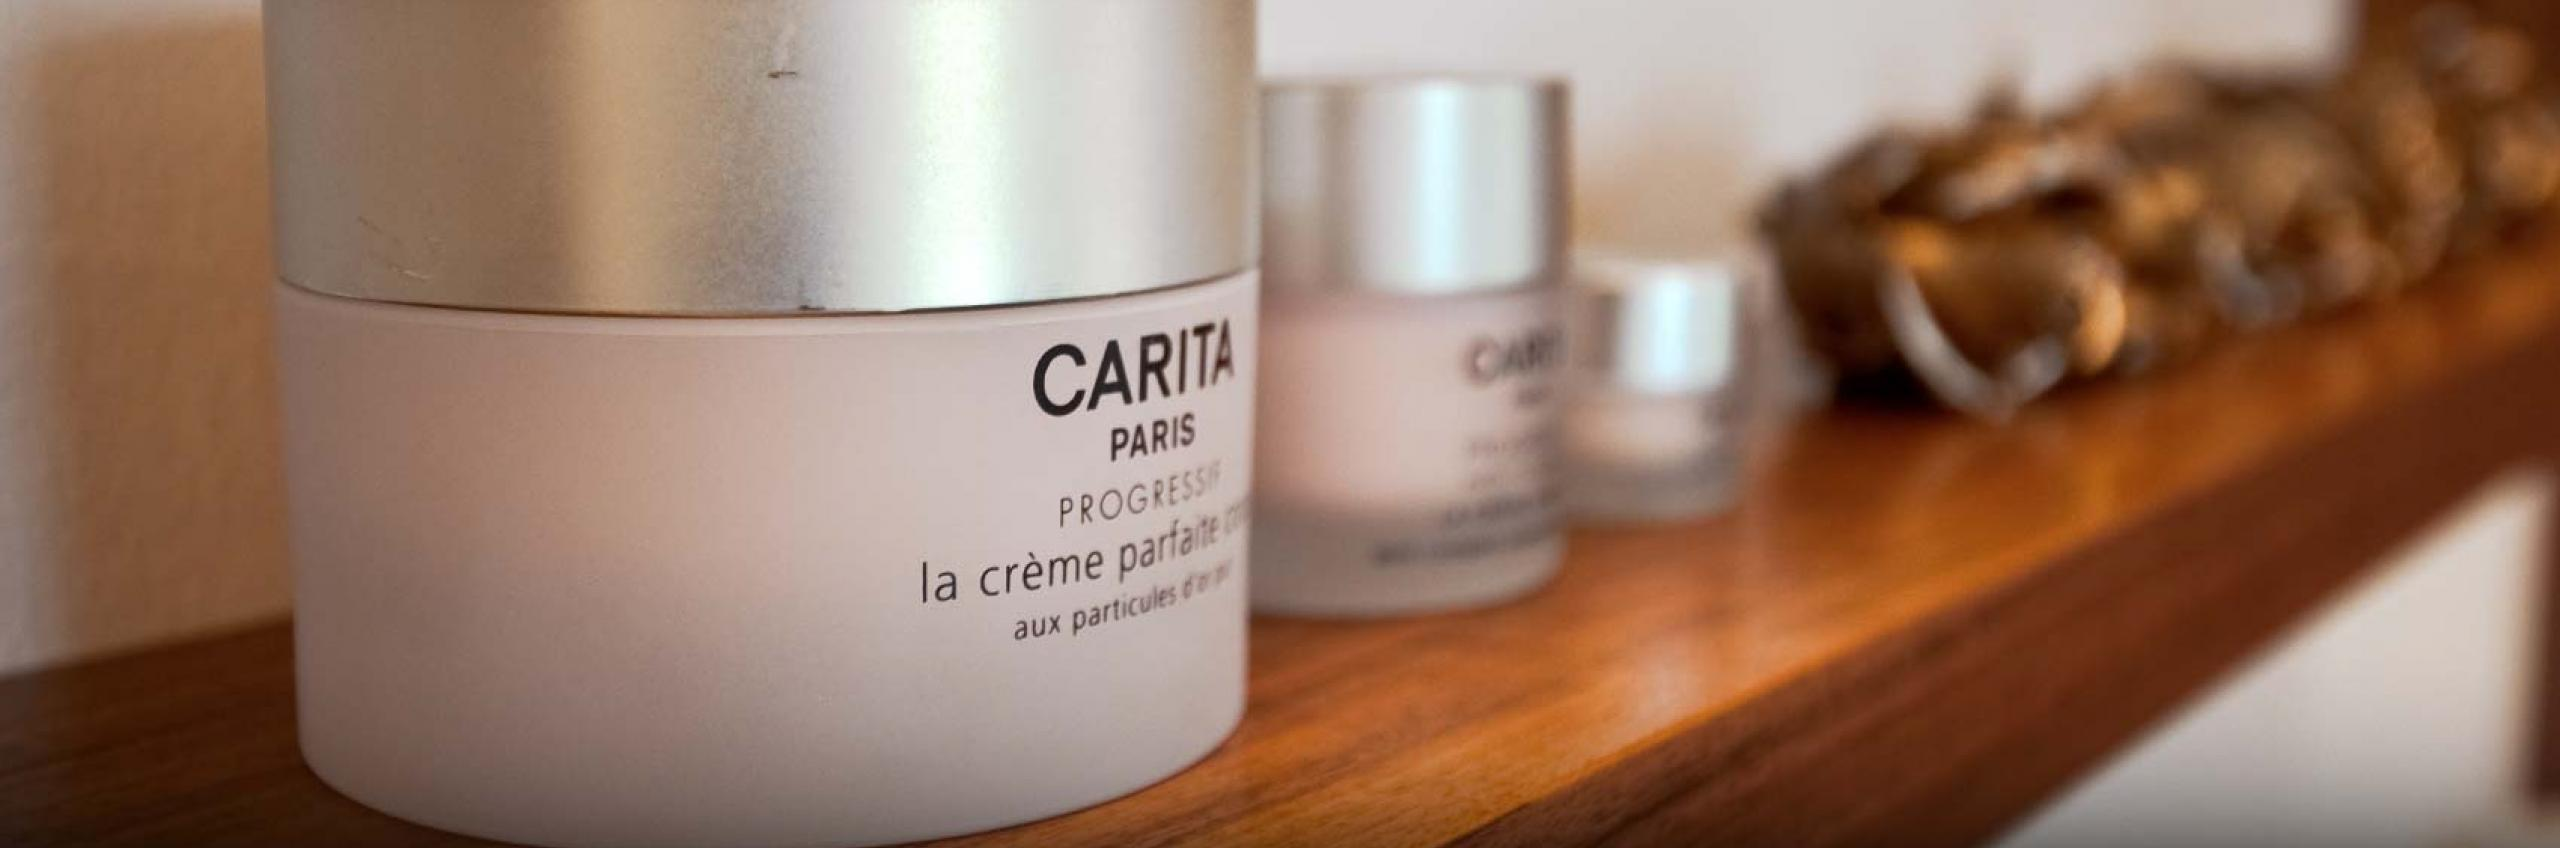 Carita Paris Spa